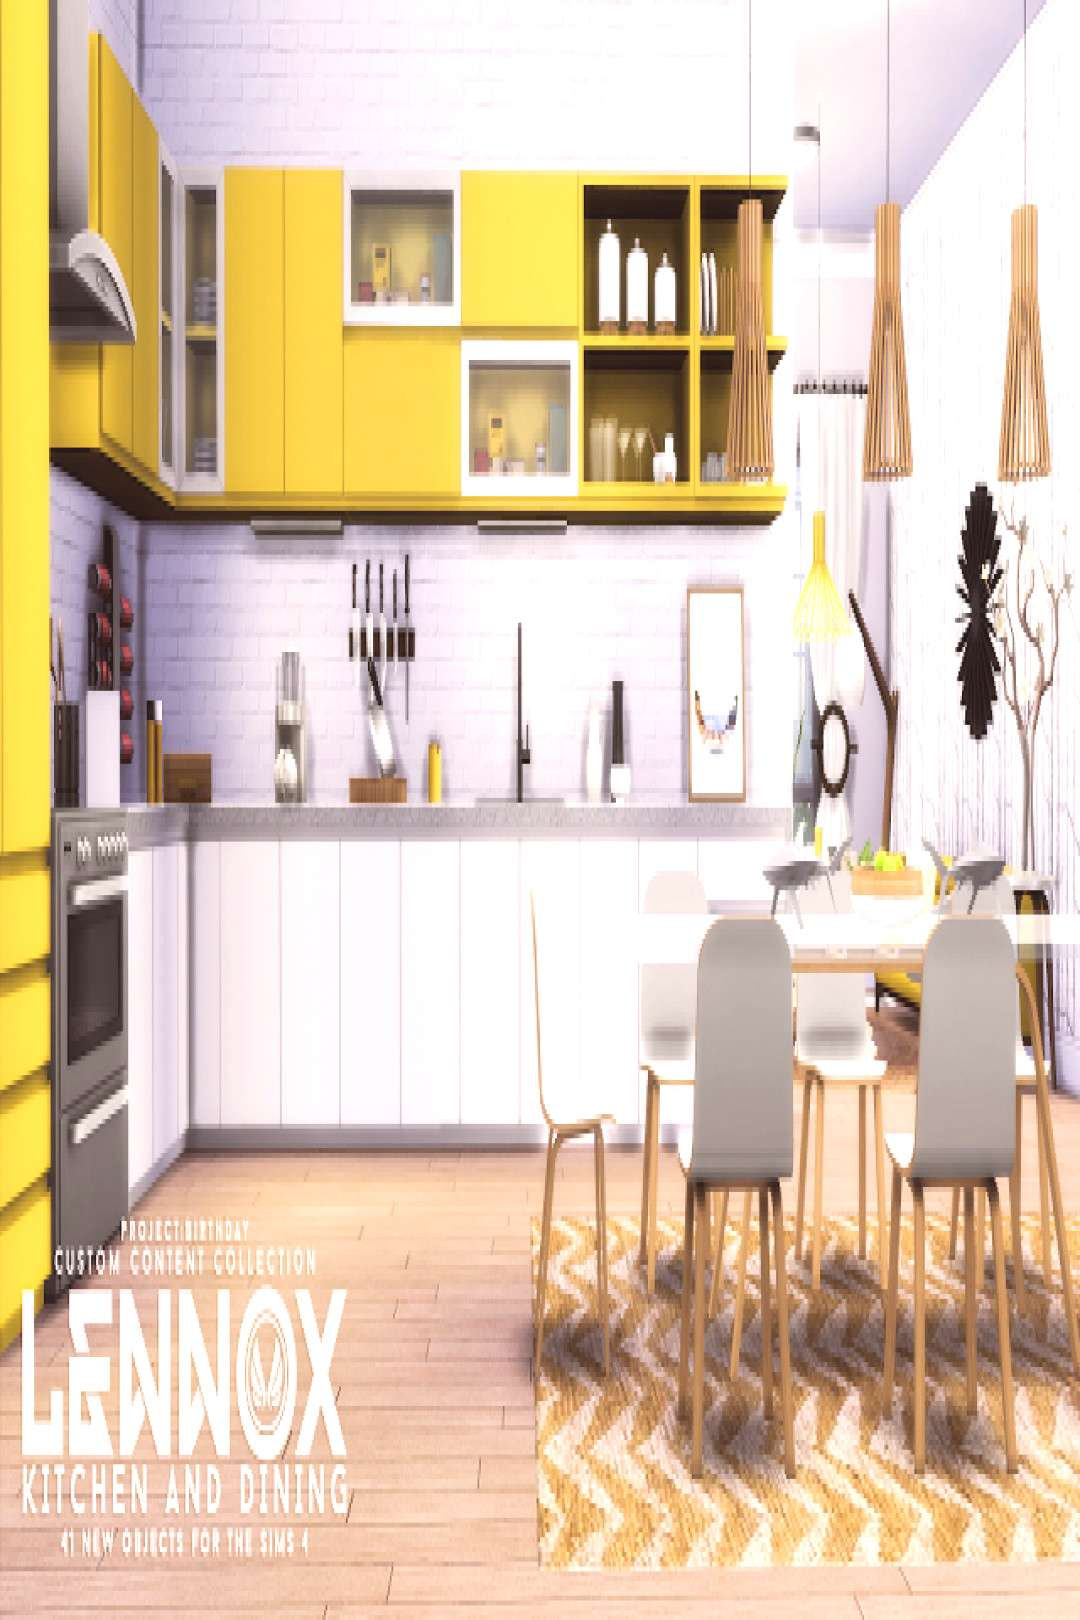 Sims 4 CCs - The Best Lennox Kitchen And Dining Set by Peacemaker ic